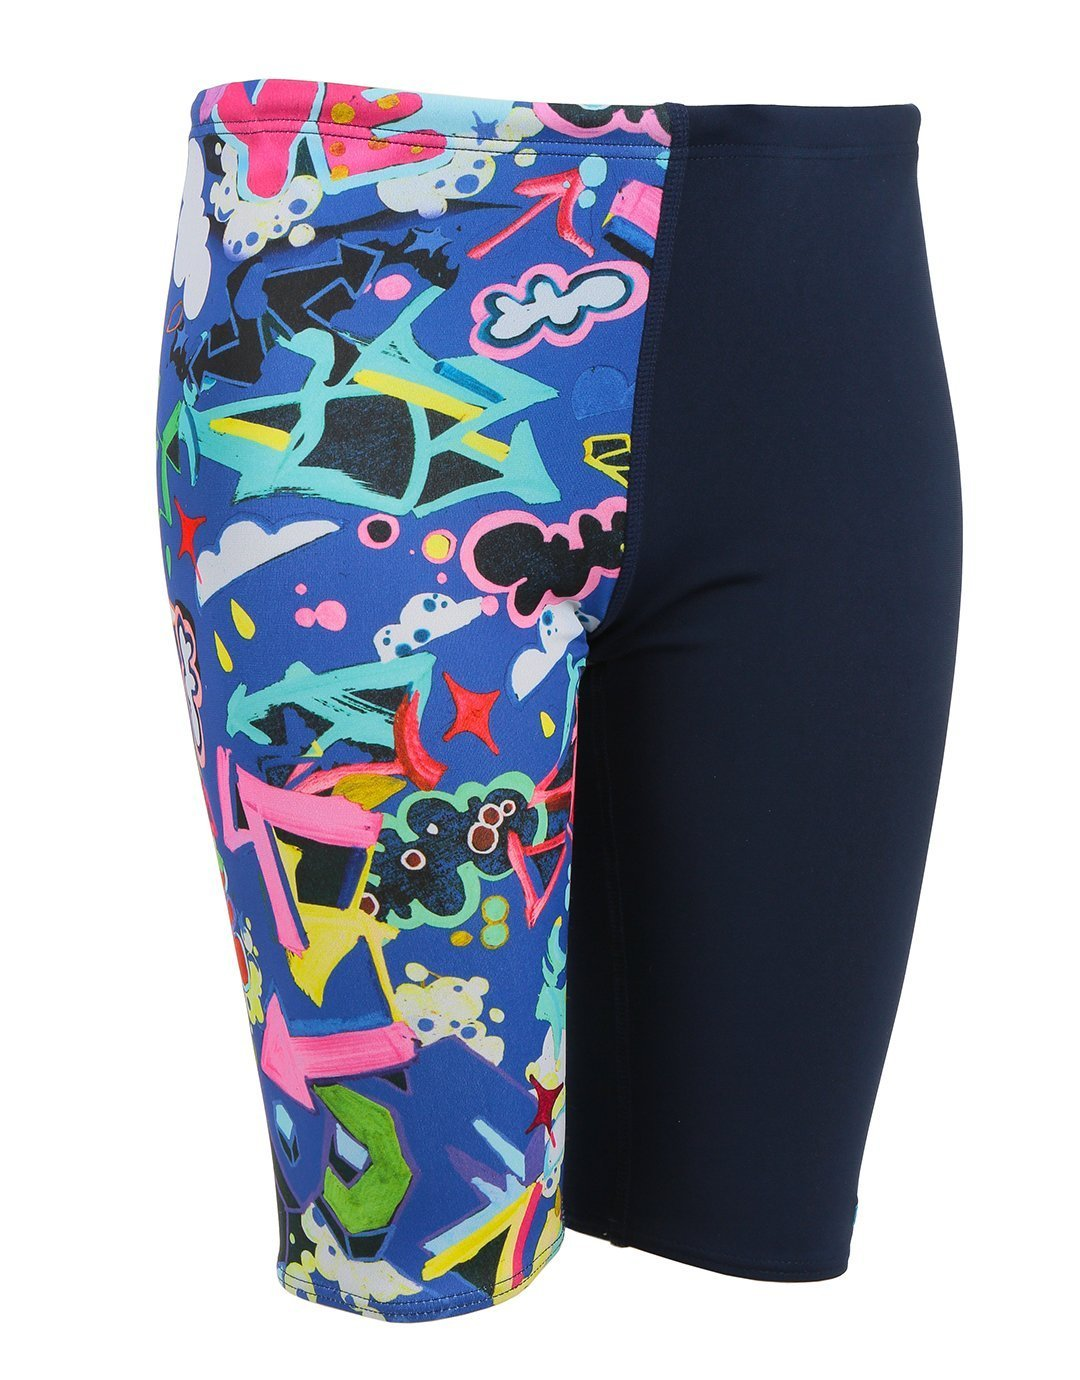 Maru Boys Scribble Jammers Size 26